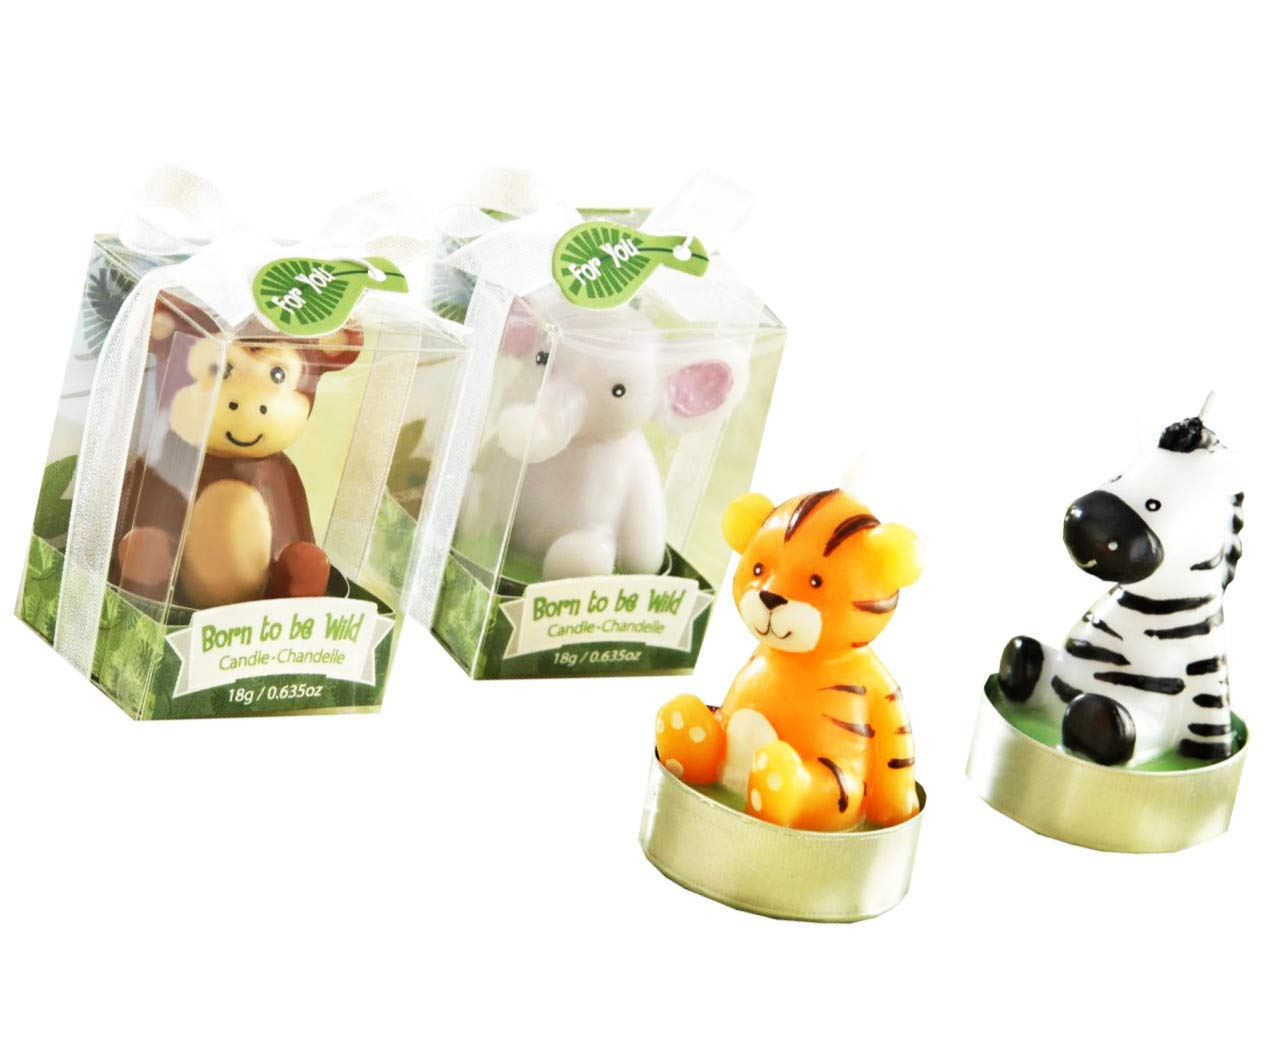 Kate Aspen Baby Shower Animal Candles, Born to be Wild - 24 Sets of 4, Total 96 Pieces by Kate Aspen (Image #2)